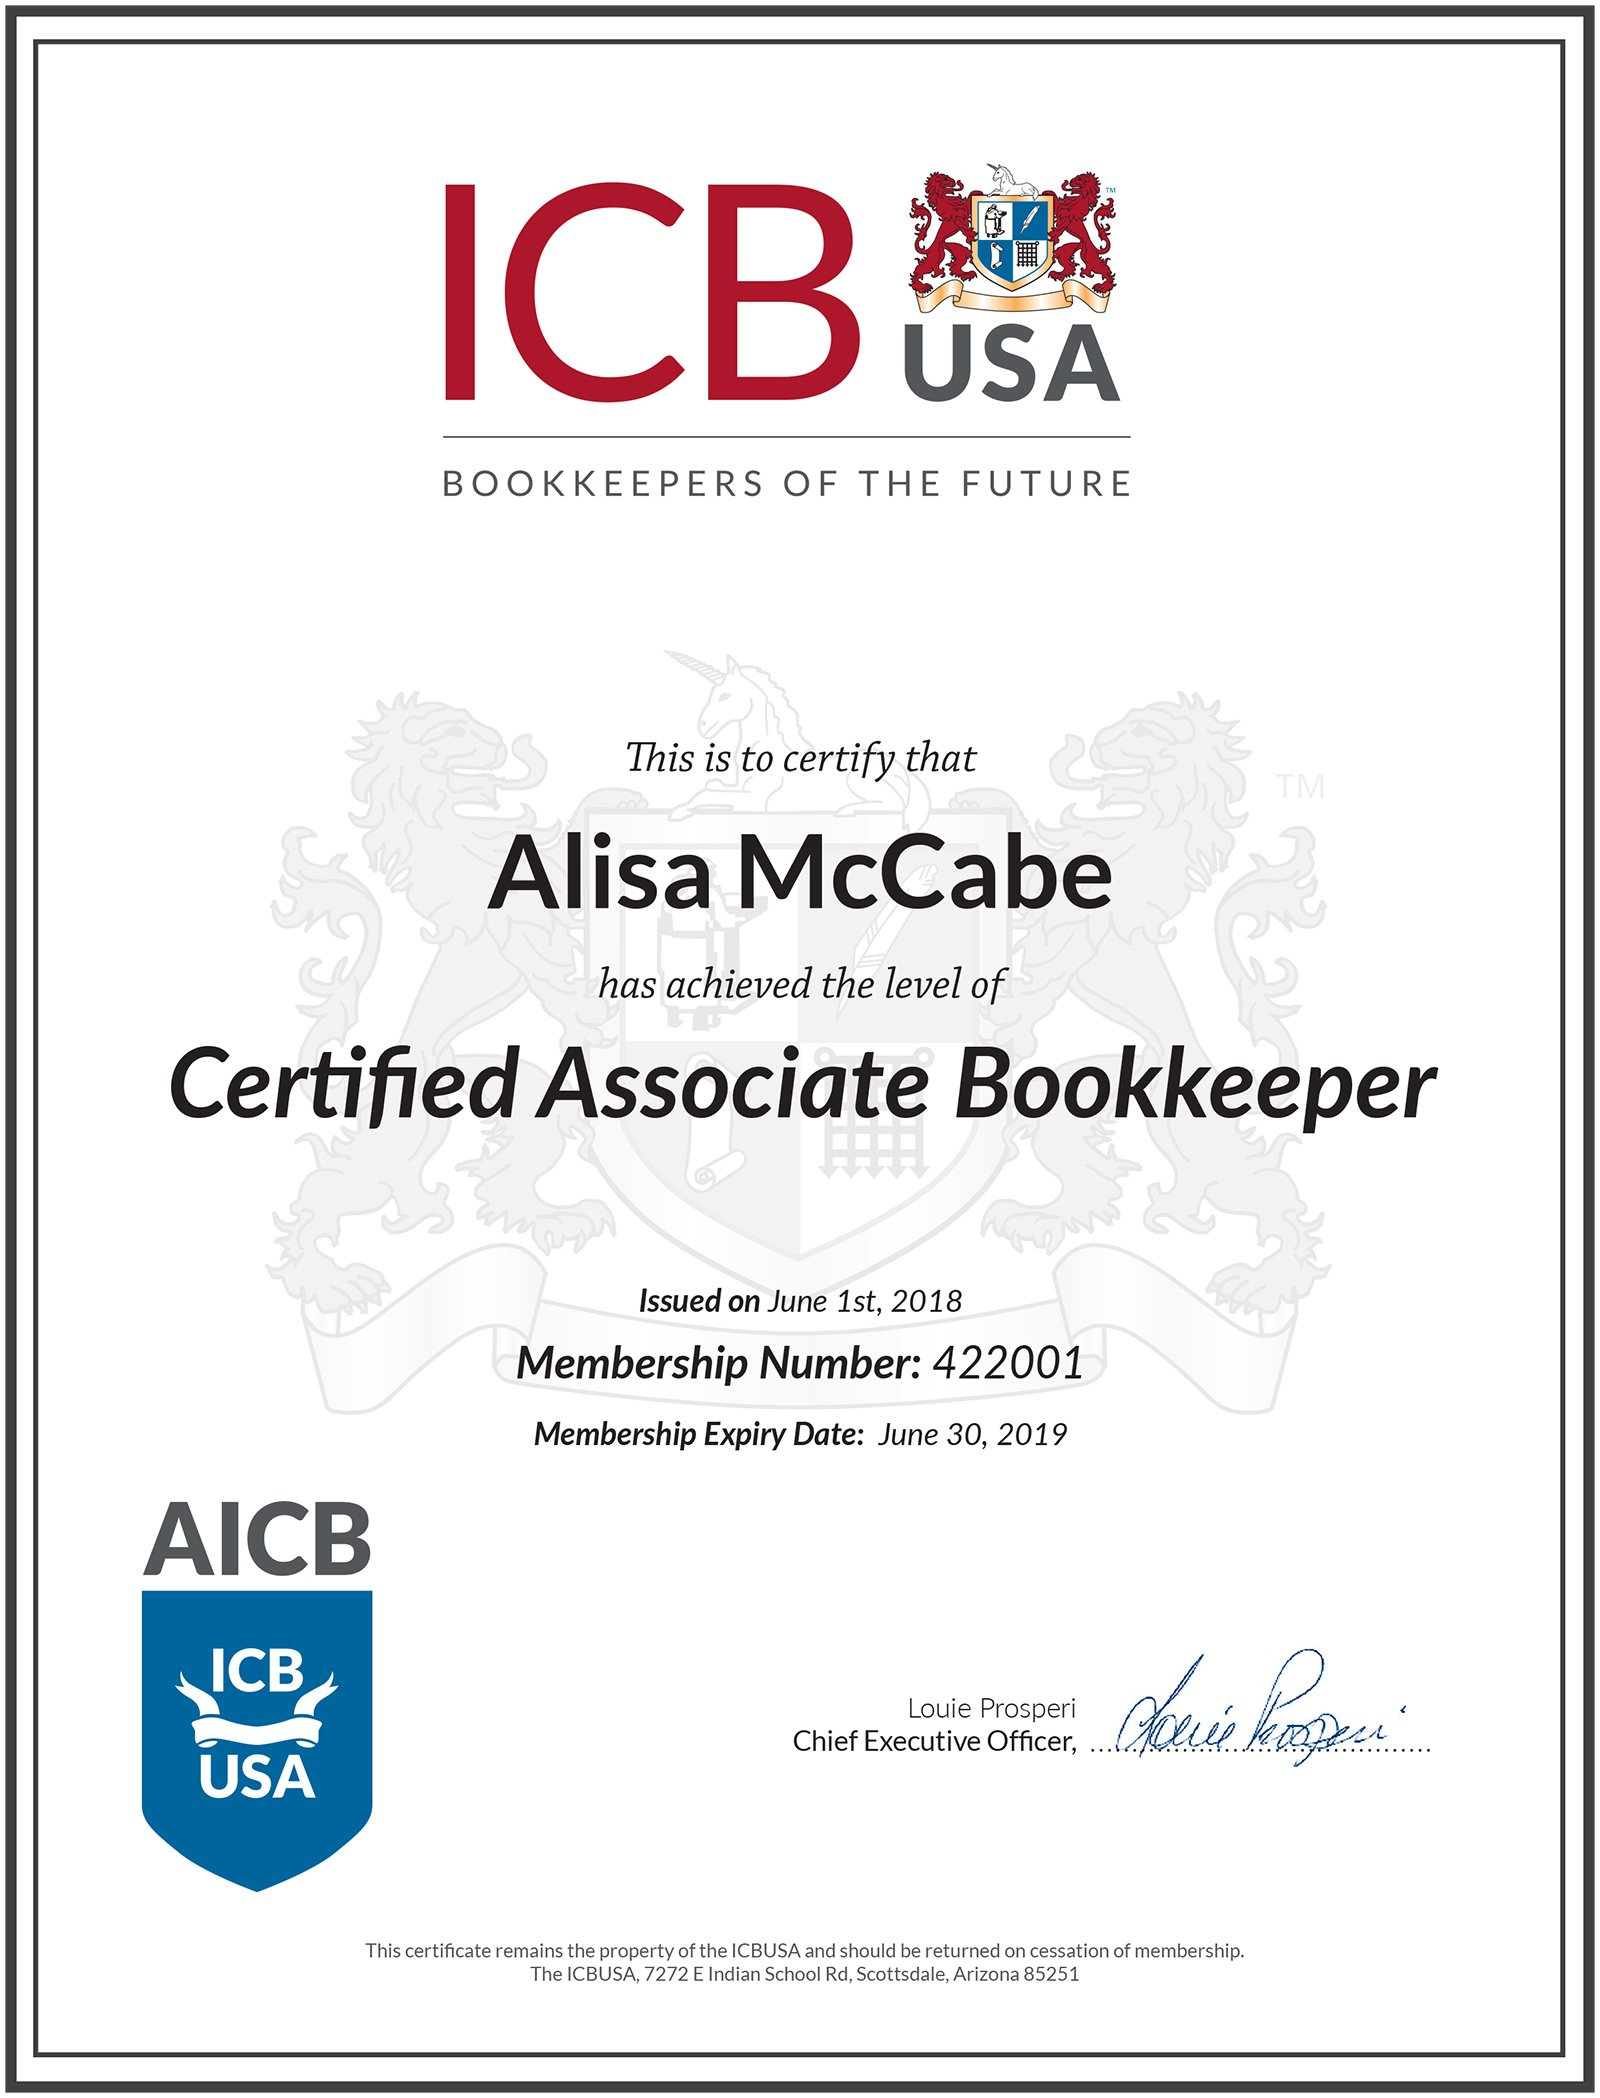 This is to certify that Alisa McCabe has achieved the level of Certified Associate Bookkeeper